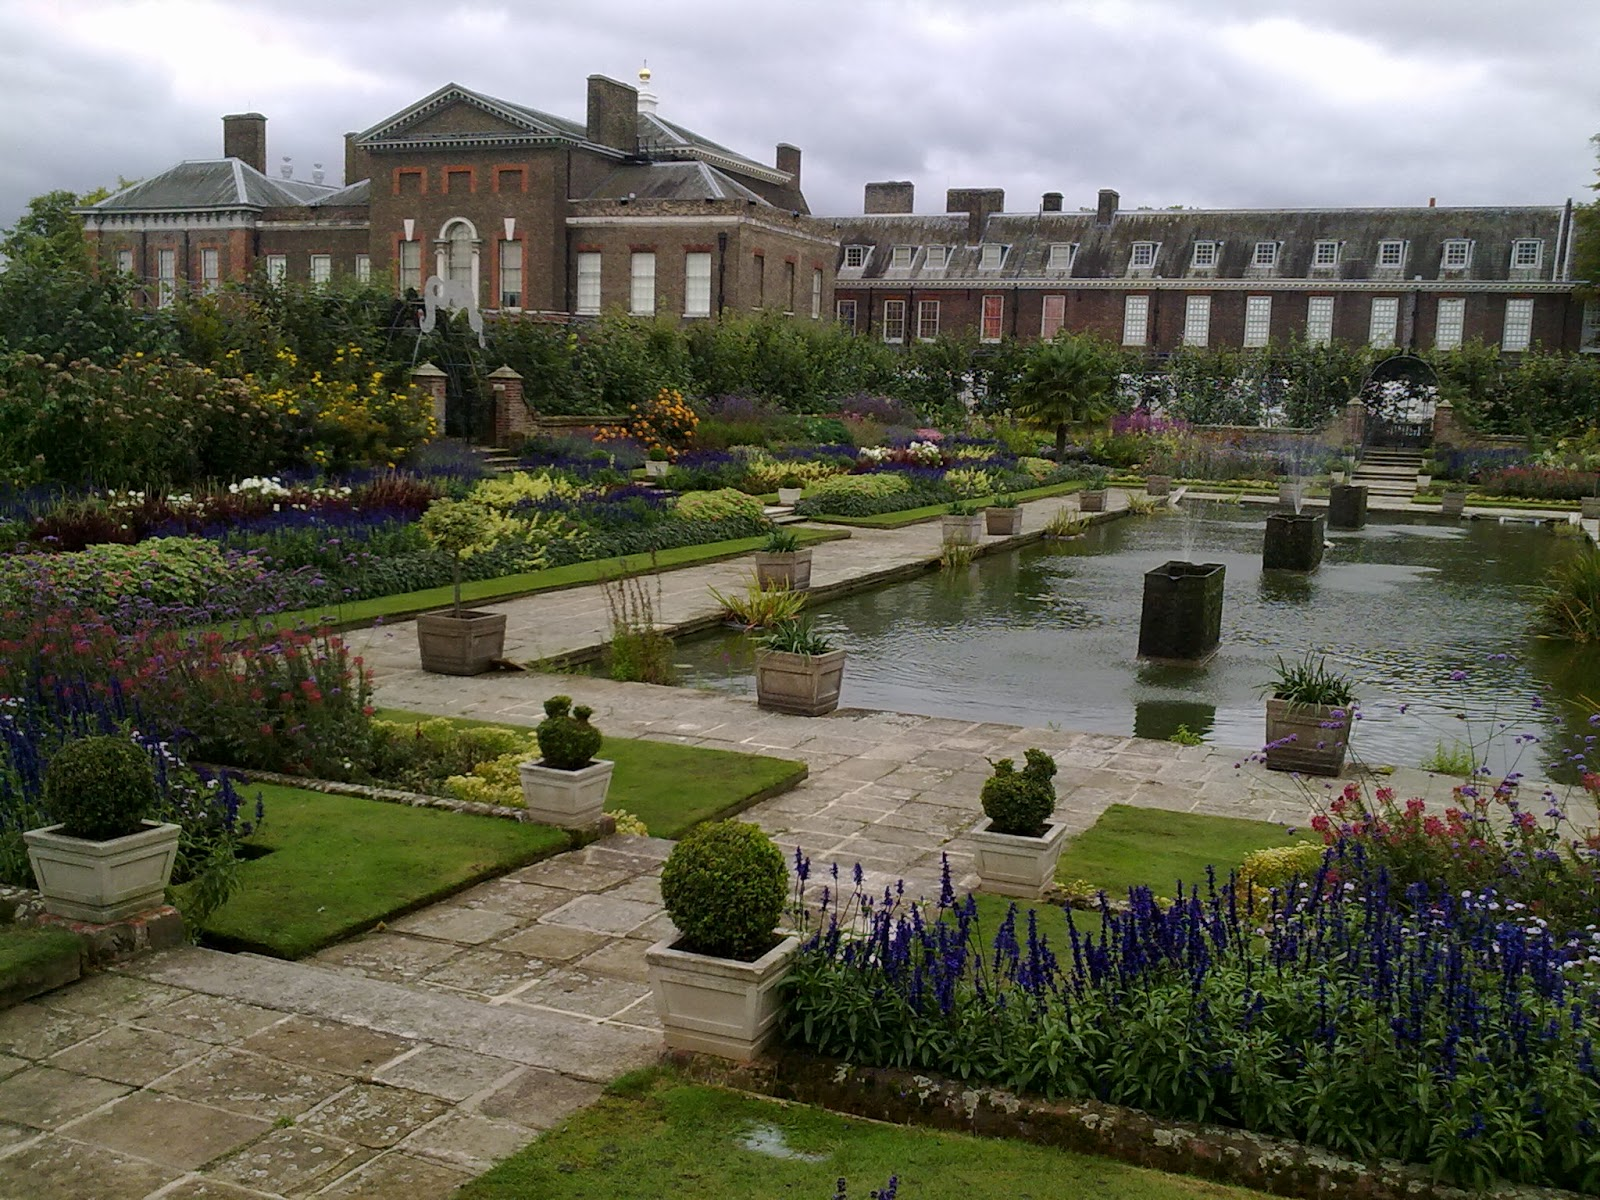 Kensington Palace Photo (C) GETTY IMAGES